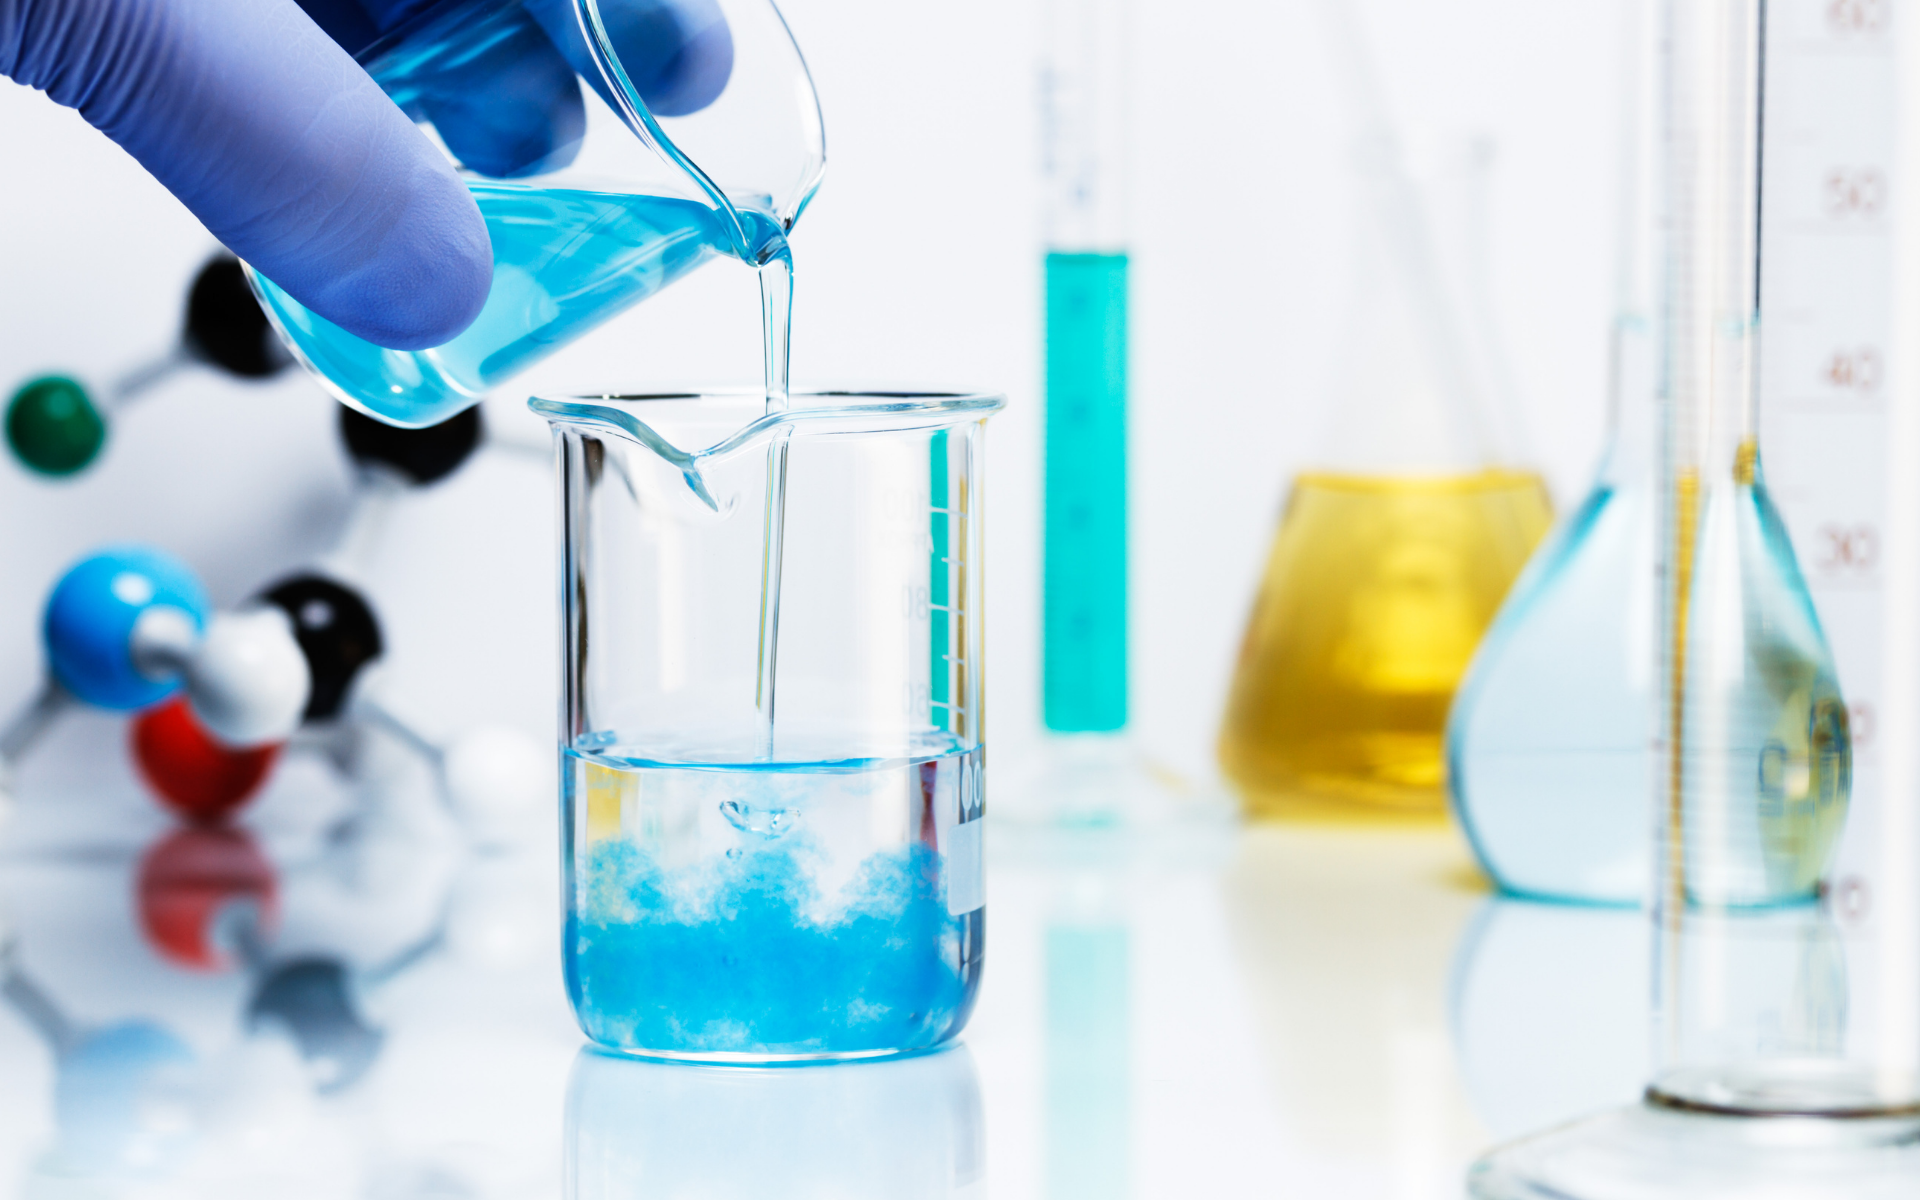 Chemicals of Concern and the Sustainable Development Goals